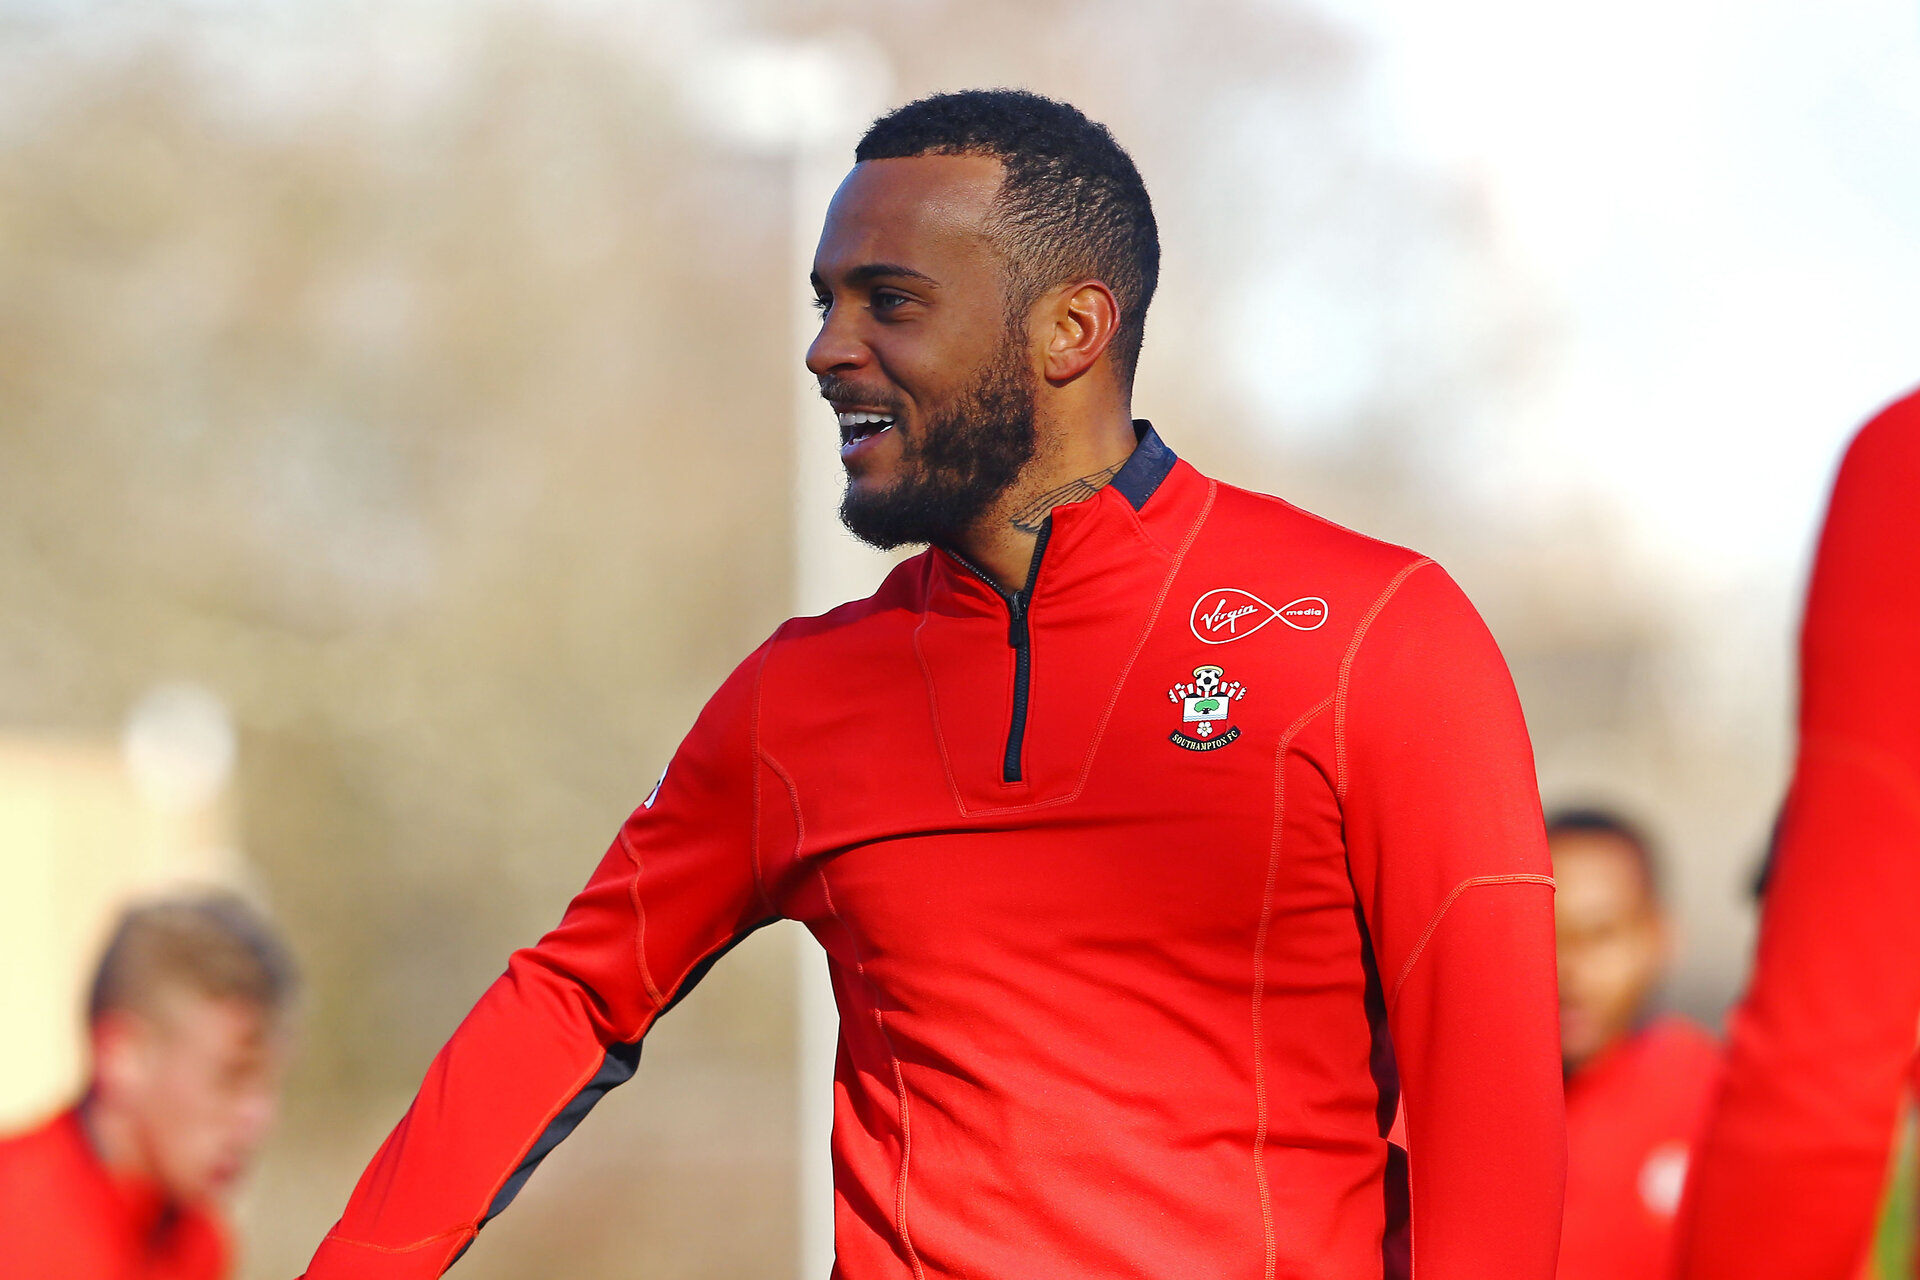 SOUTHAMPTON, ENGLAND - JANUARY 28:  Ryan Bertrand during a Southampton FC  training session at Staplewood Complex on January 28, 2019 in Southampton, England. (Photo by James Bridle - Southampton FC/Southampton FC via Getty Images)